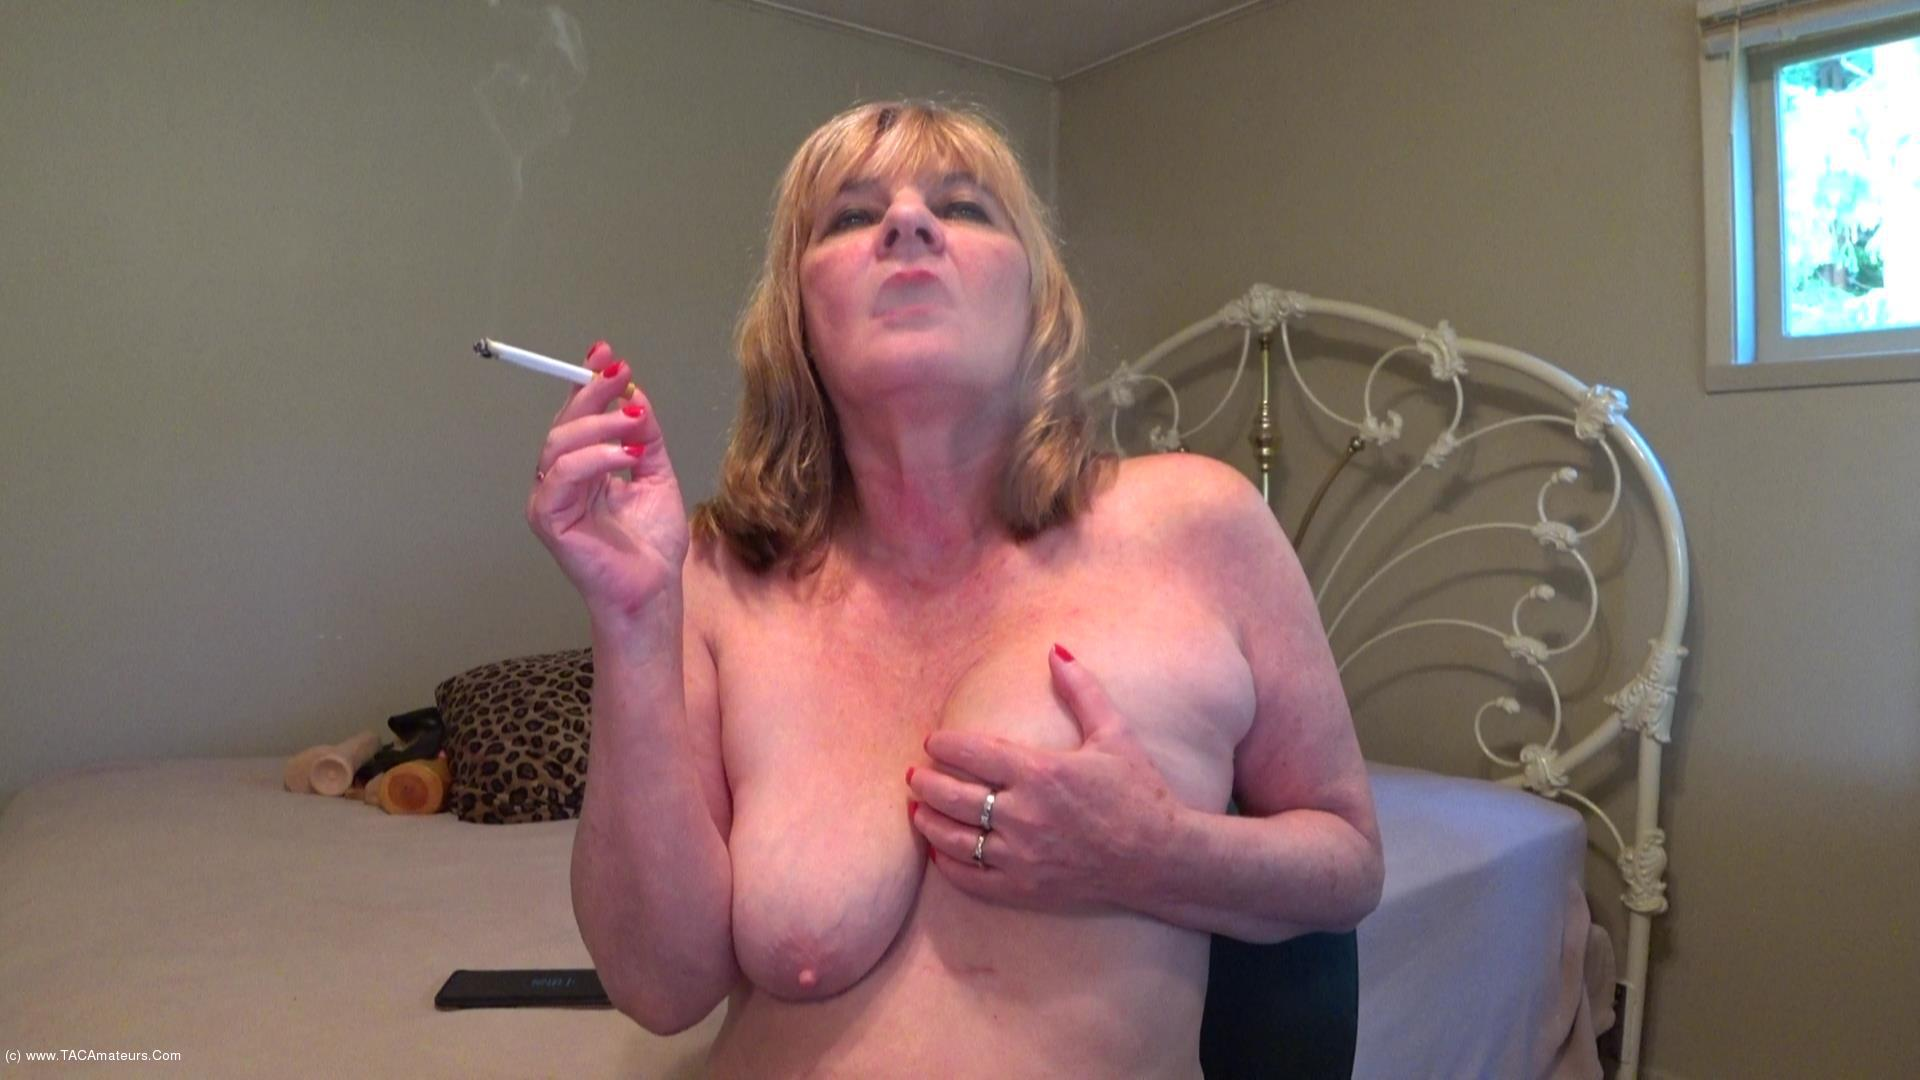 CougarBabeJolee - Titty Play & Smoking scene 0